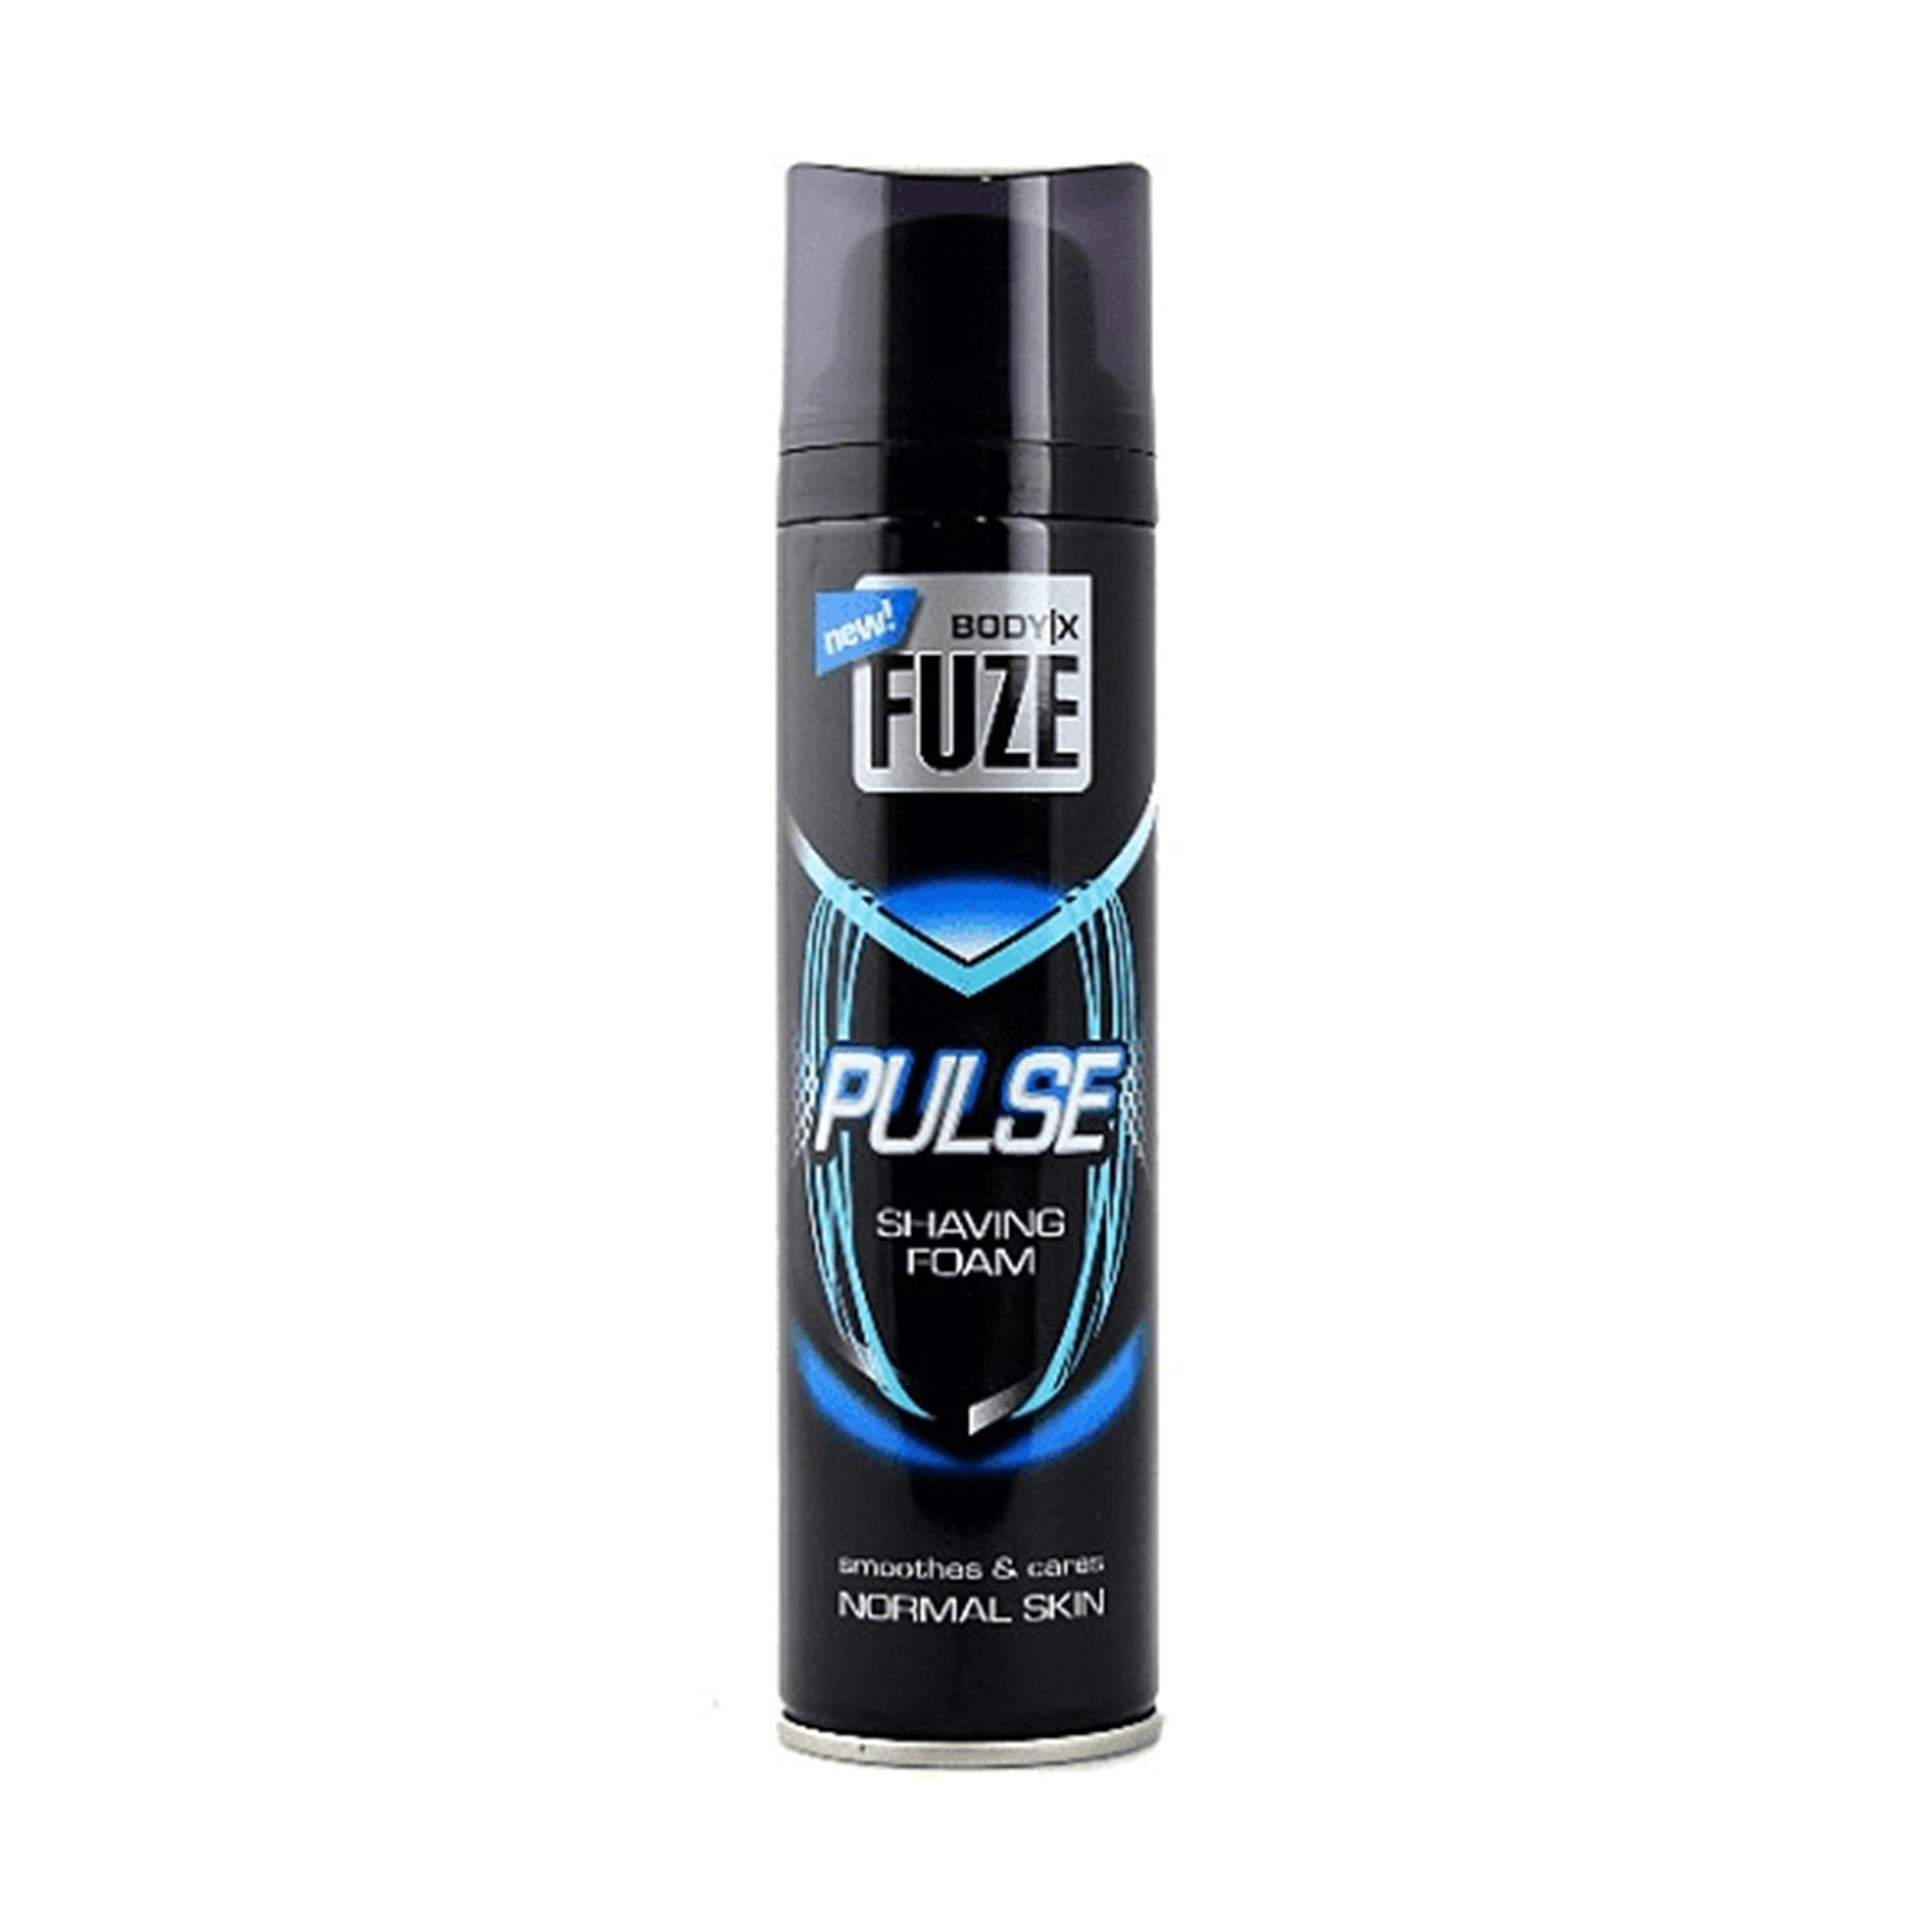 Body-X Fuse Shaving Foam for Normal Skin 200ml